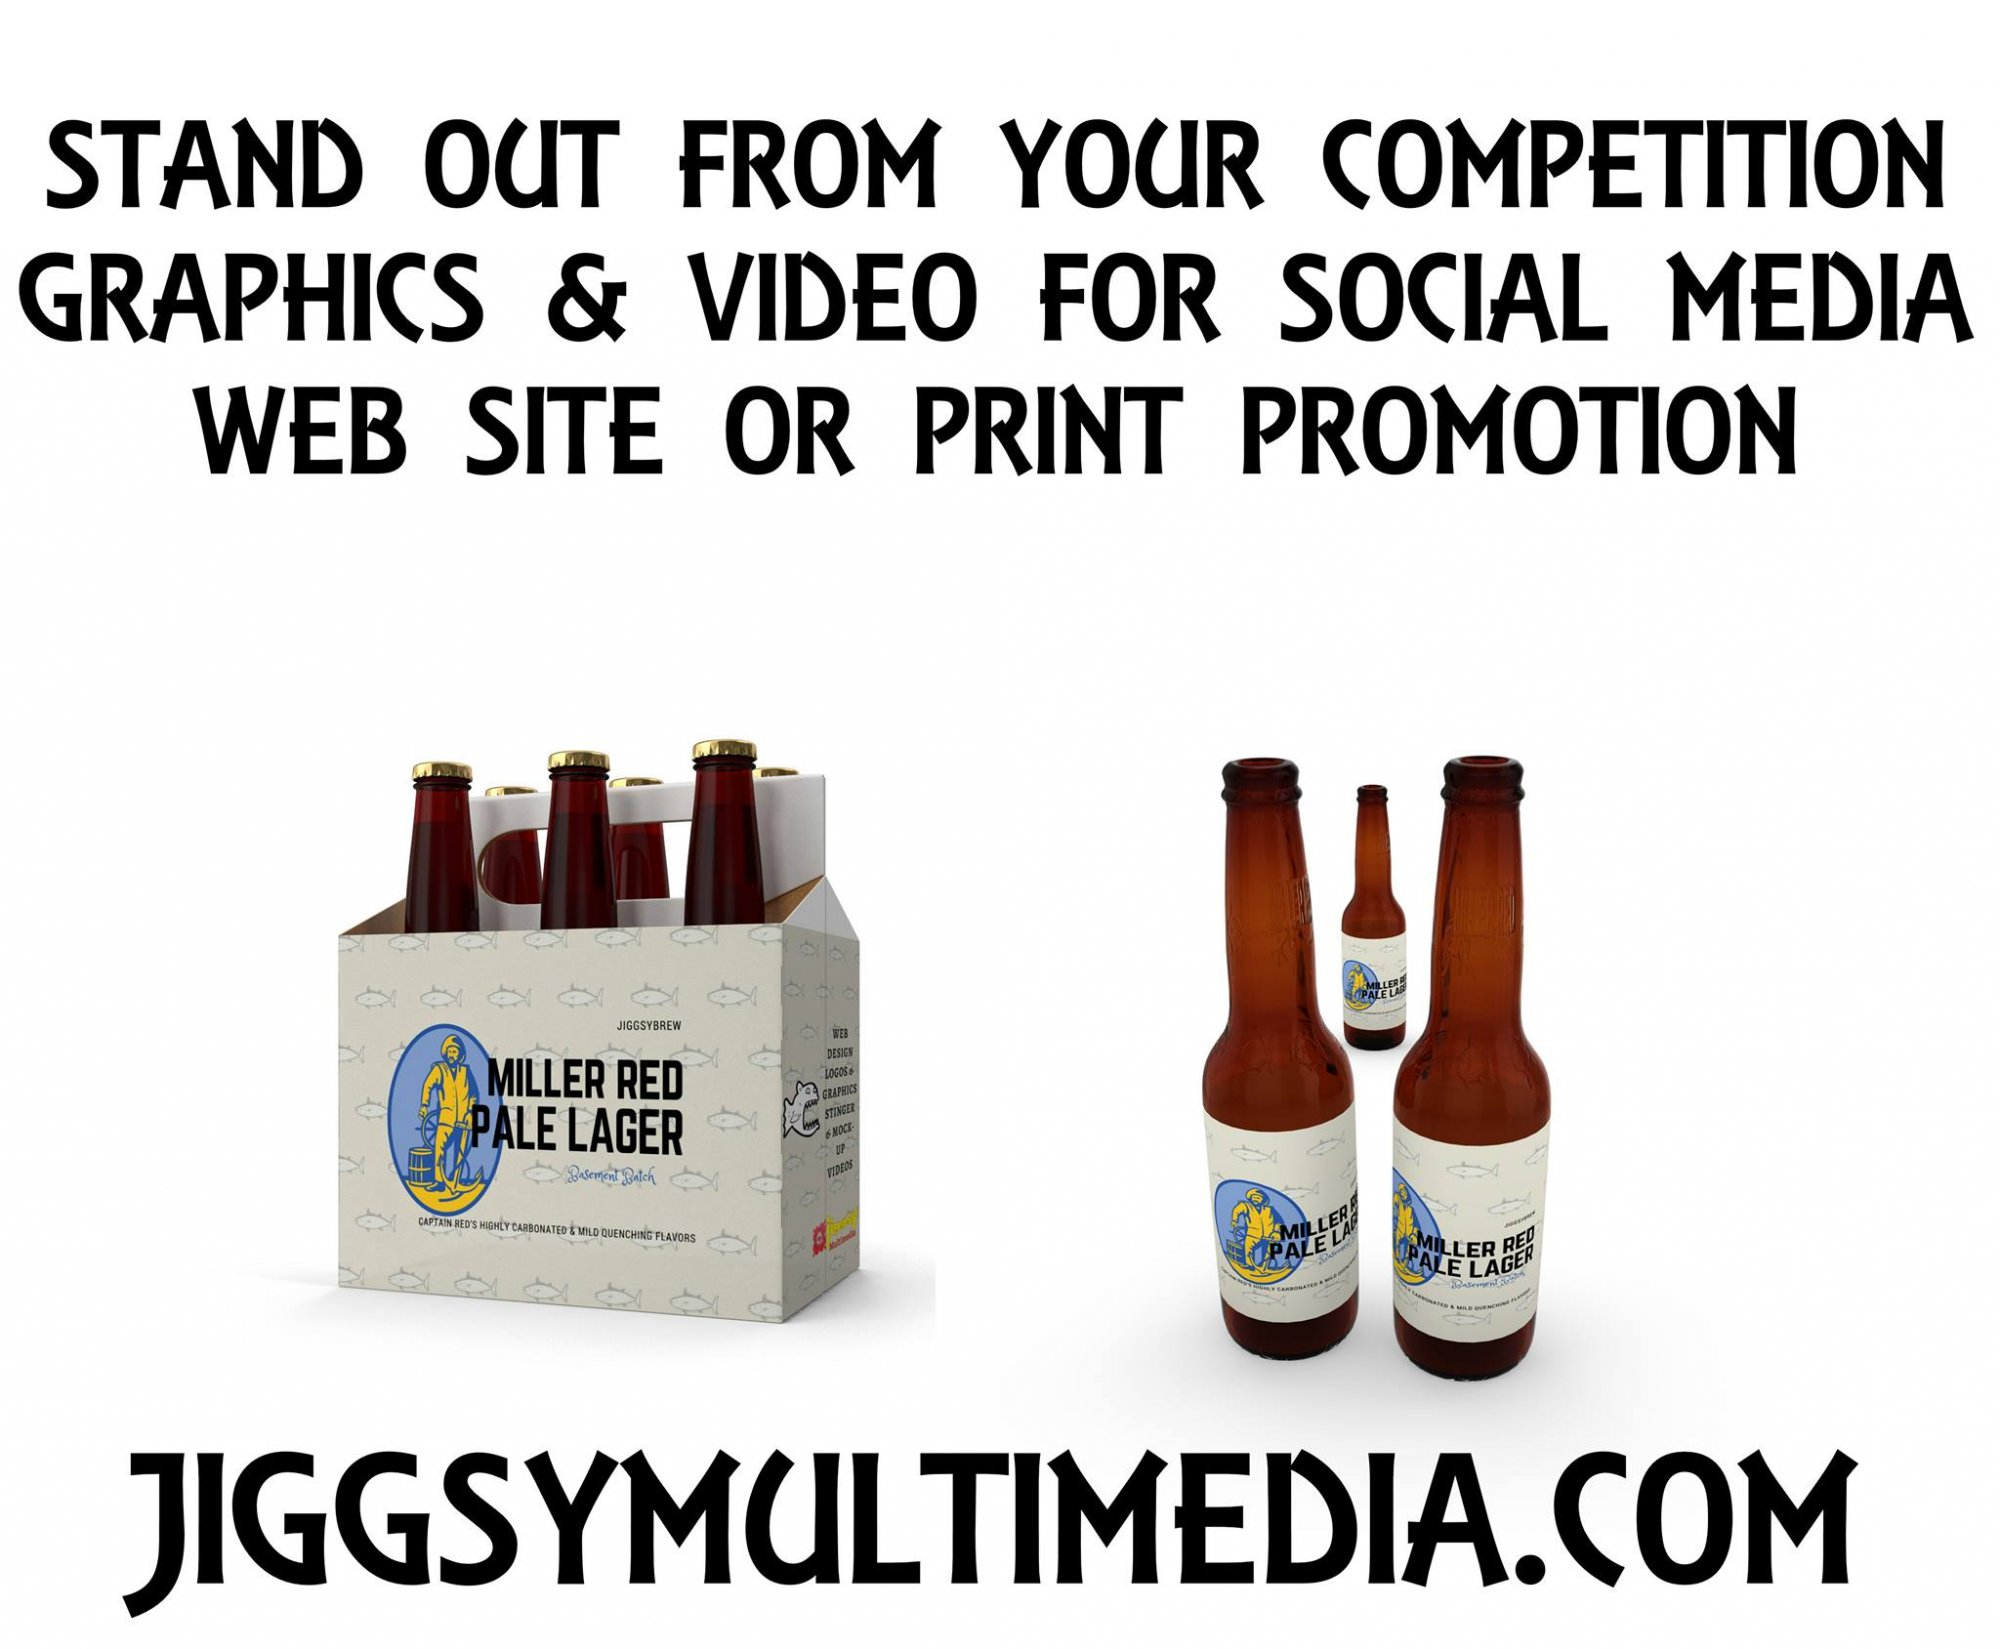 Custom label for virtual cover of the cans.  A virtual cover such as bottles and cans that may represent your business is an excellent image tool to promote something new.